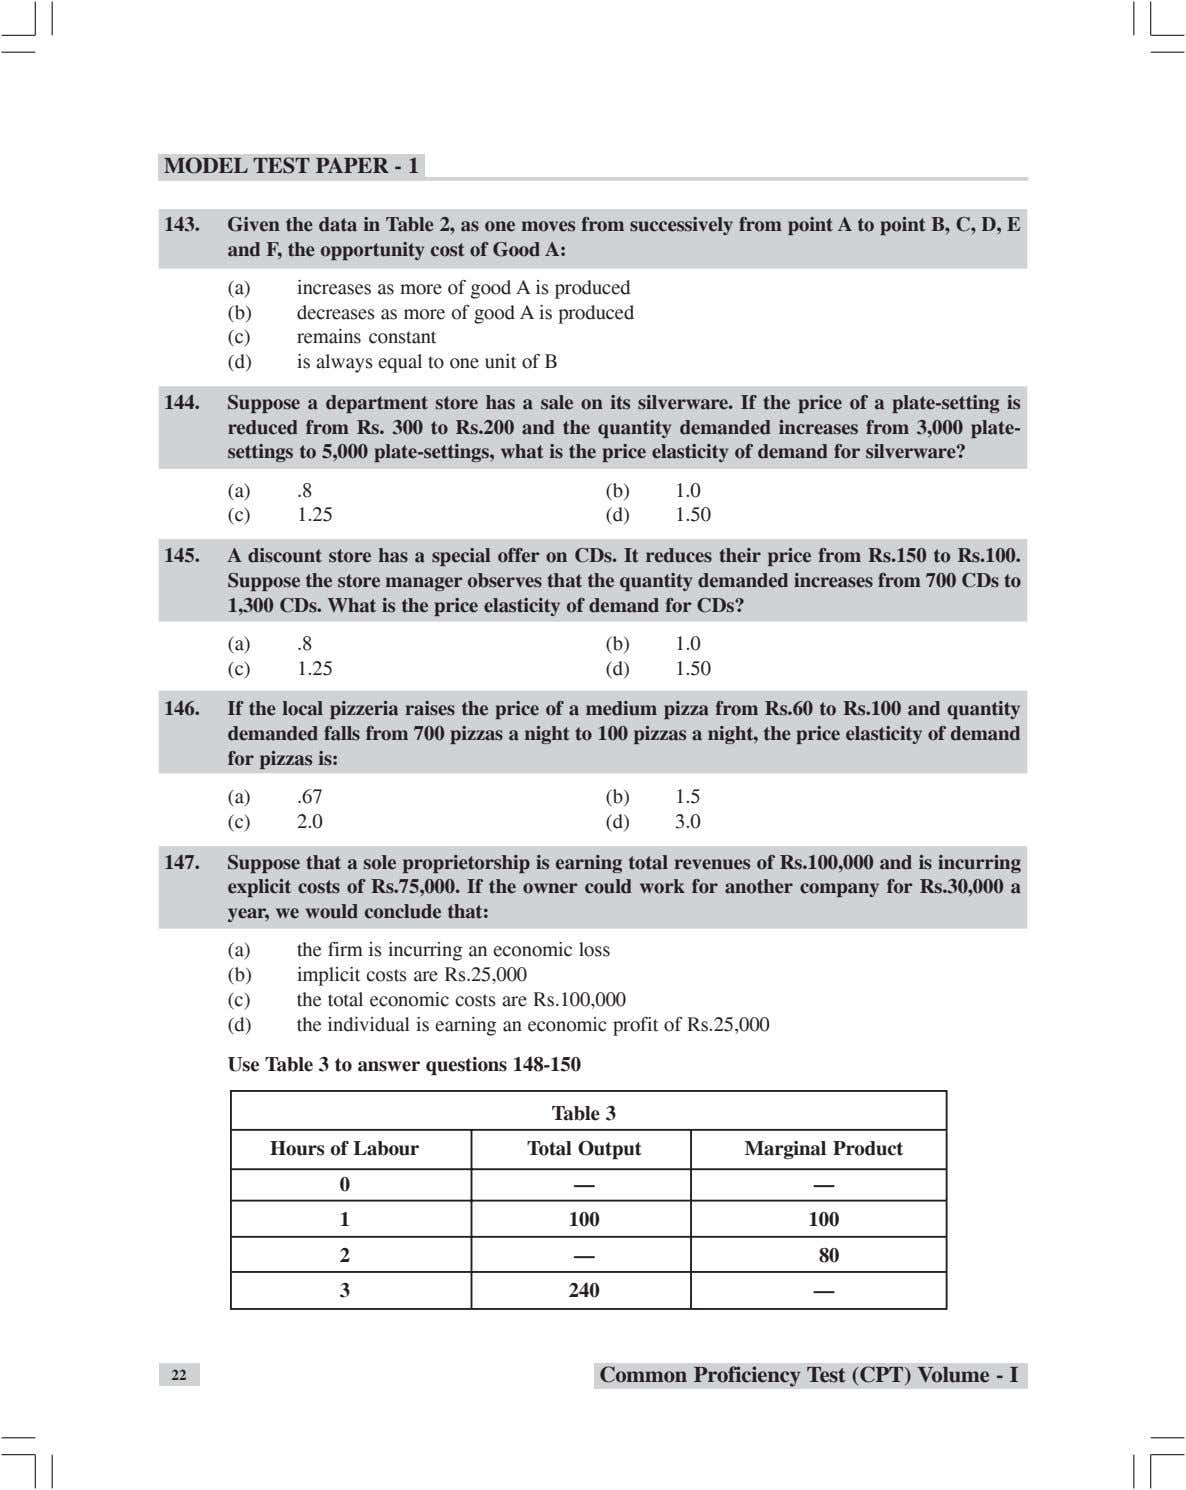 MODEL TEST PAPER - 1 143. Given the data in Table 2, as one moves from